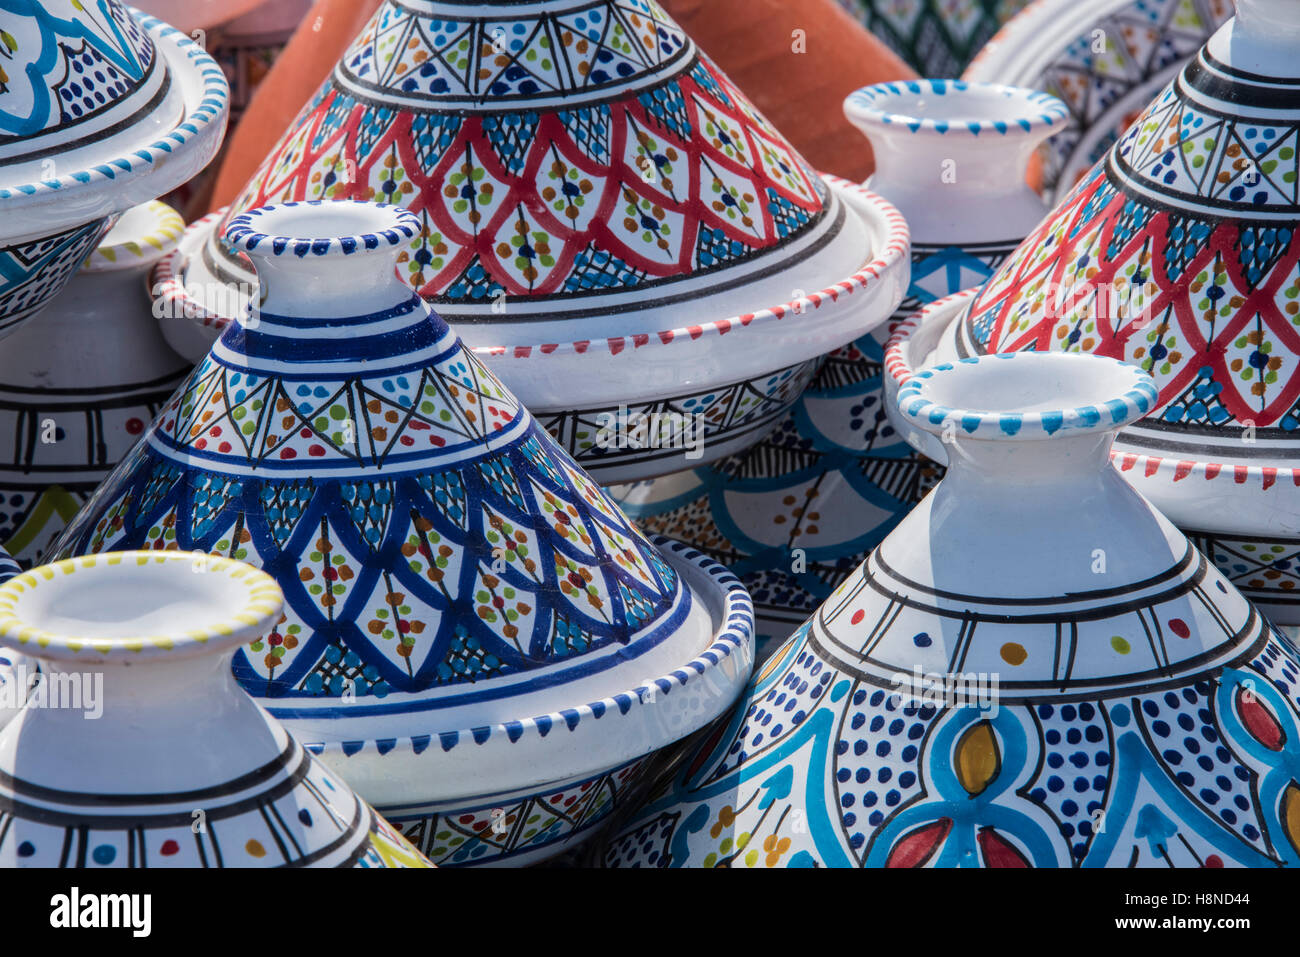 Ceramic Pots For Sale Part - 34: Moroccan Couscous Pots On Sale At A Stall Near The Beach, Erice, Sicily,